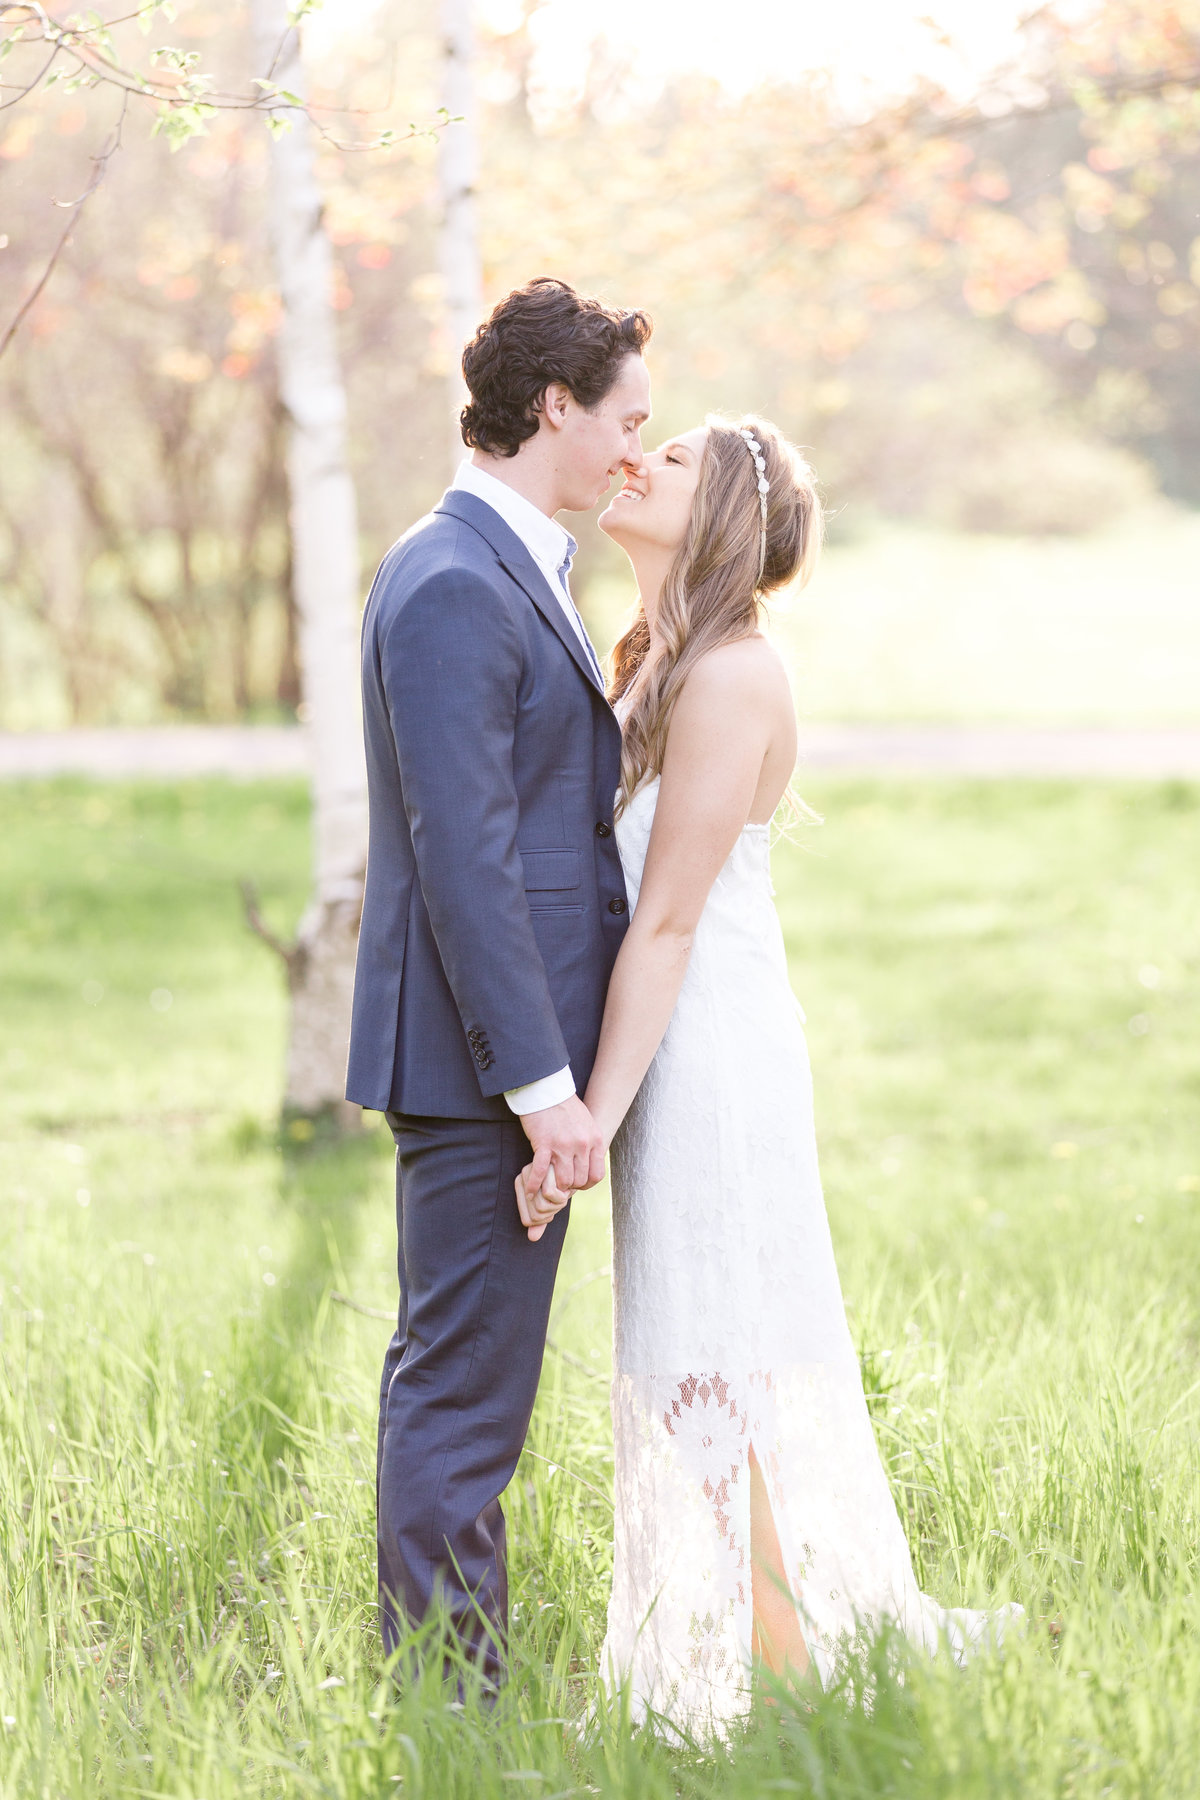 Micaela Joy Photography - Ontario, Canada Wedding and Portrait Photographer - Photo - 117